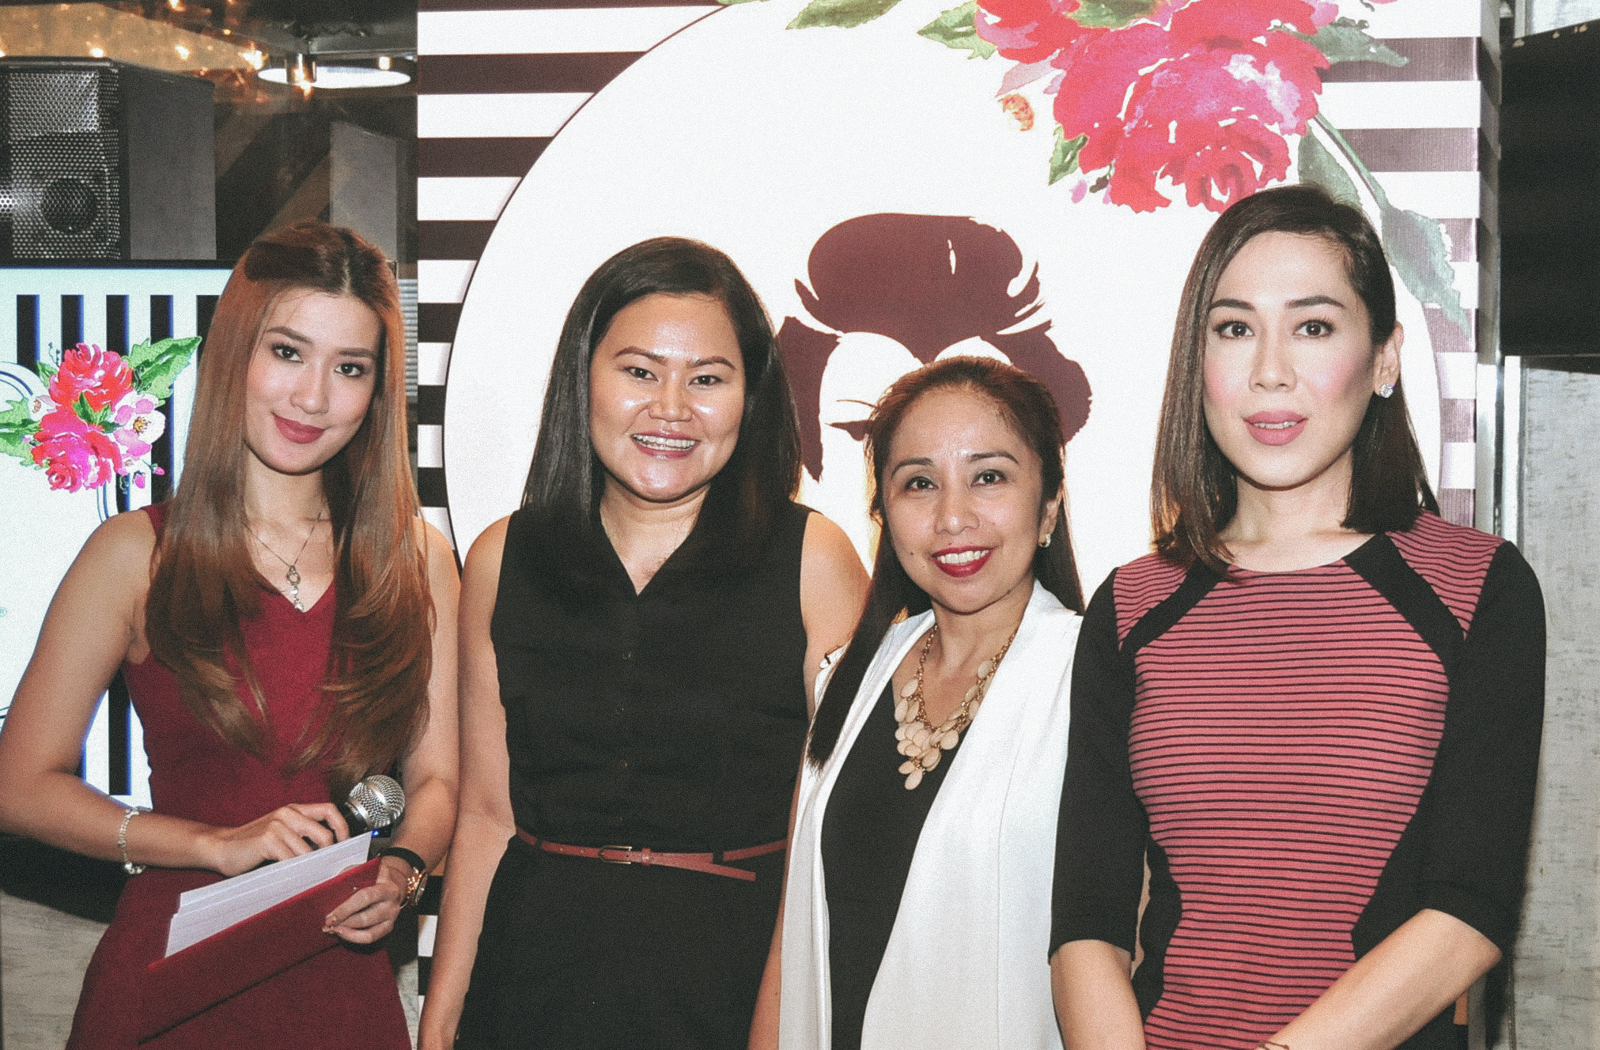 Host Janeena Chan, Dr Lindsay Torralba, Kojiesan Marketing Head Tricia Gregorio and Make Up Artist RB Chanco